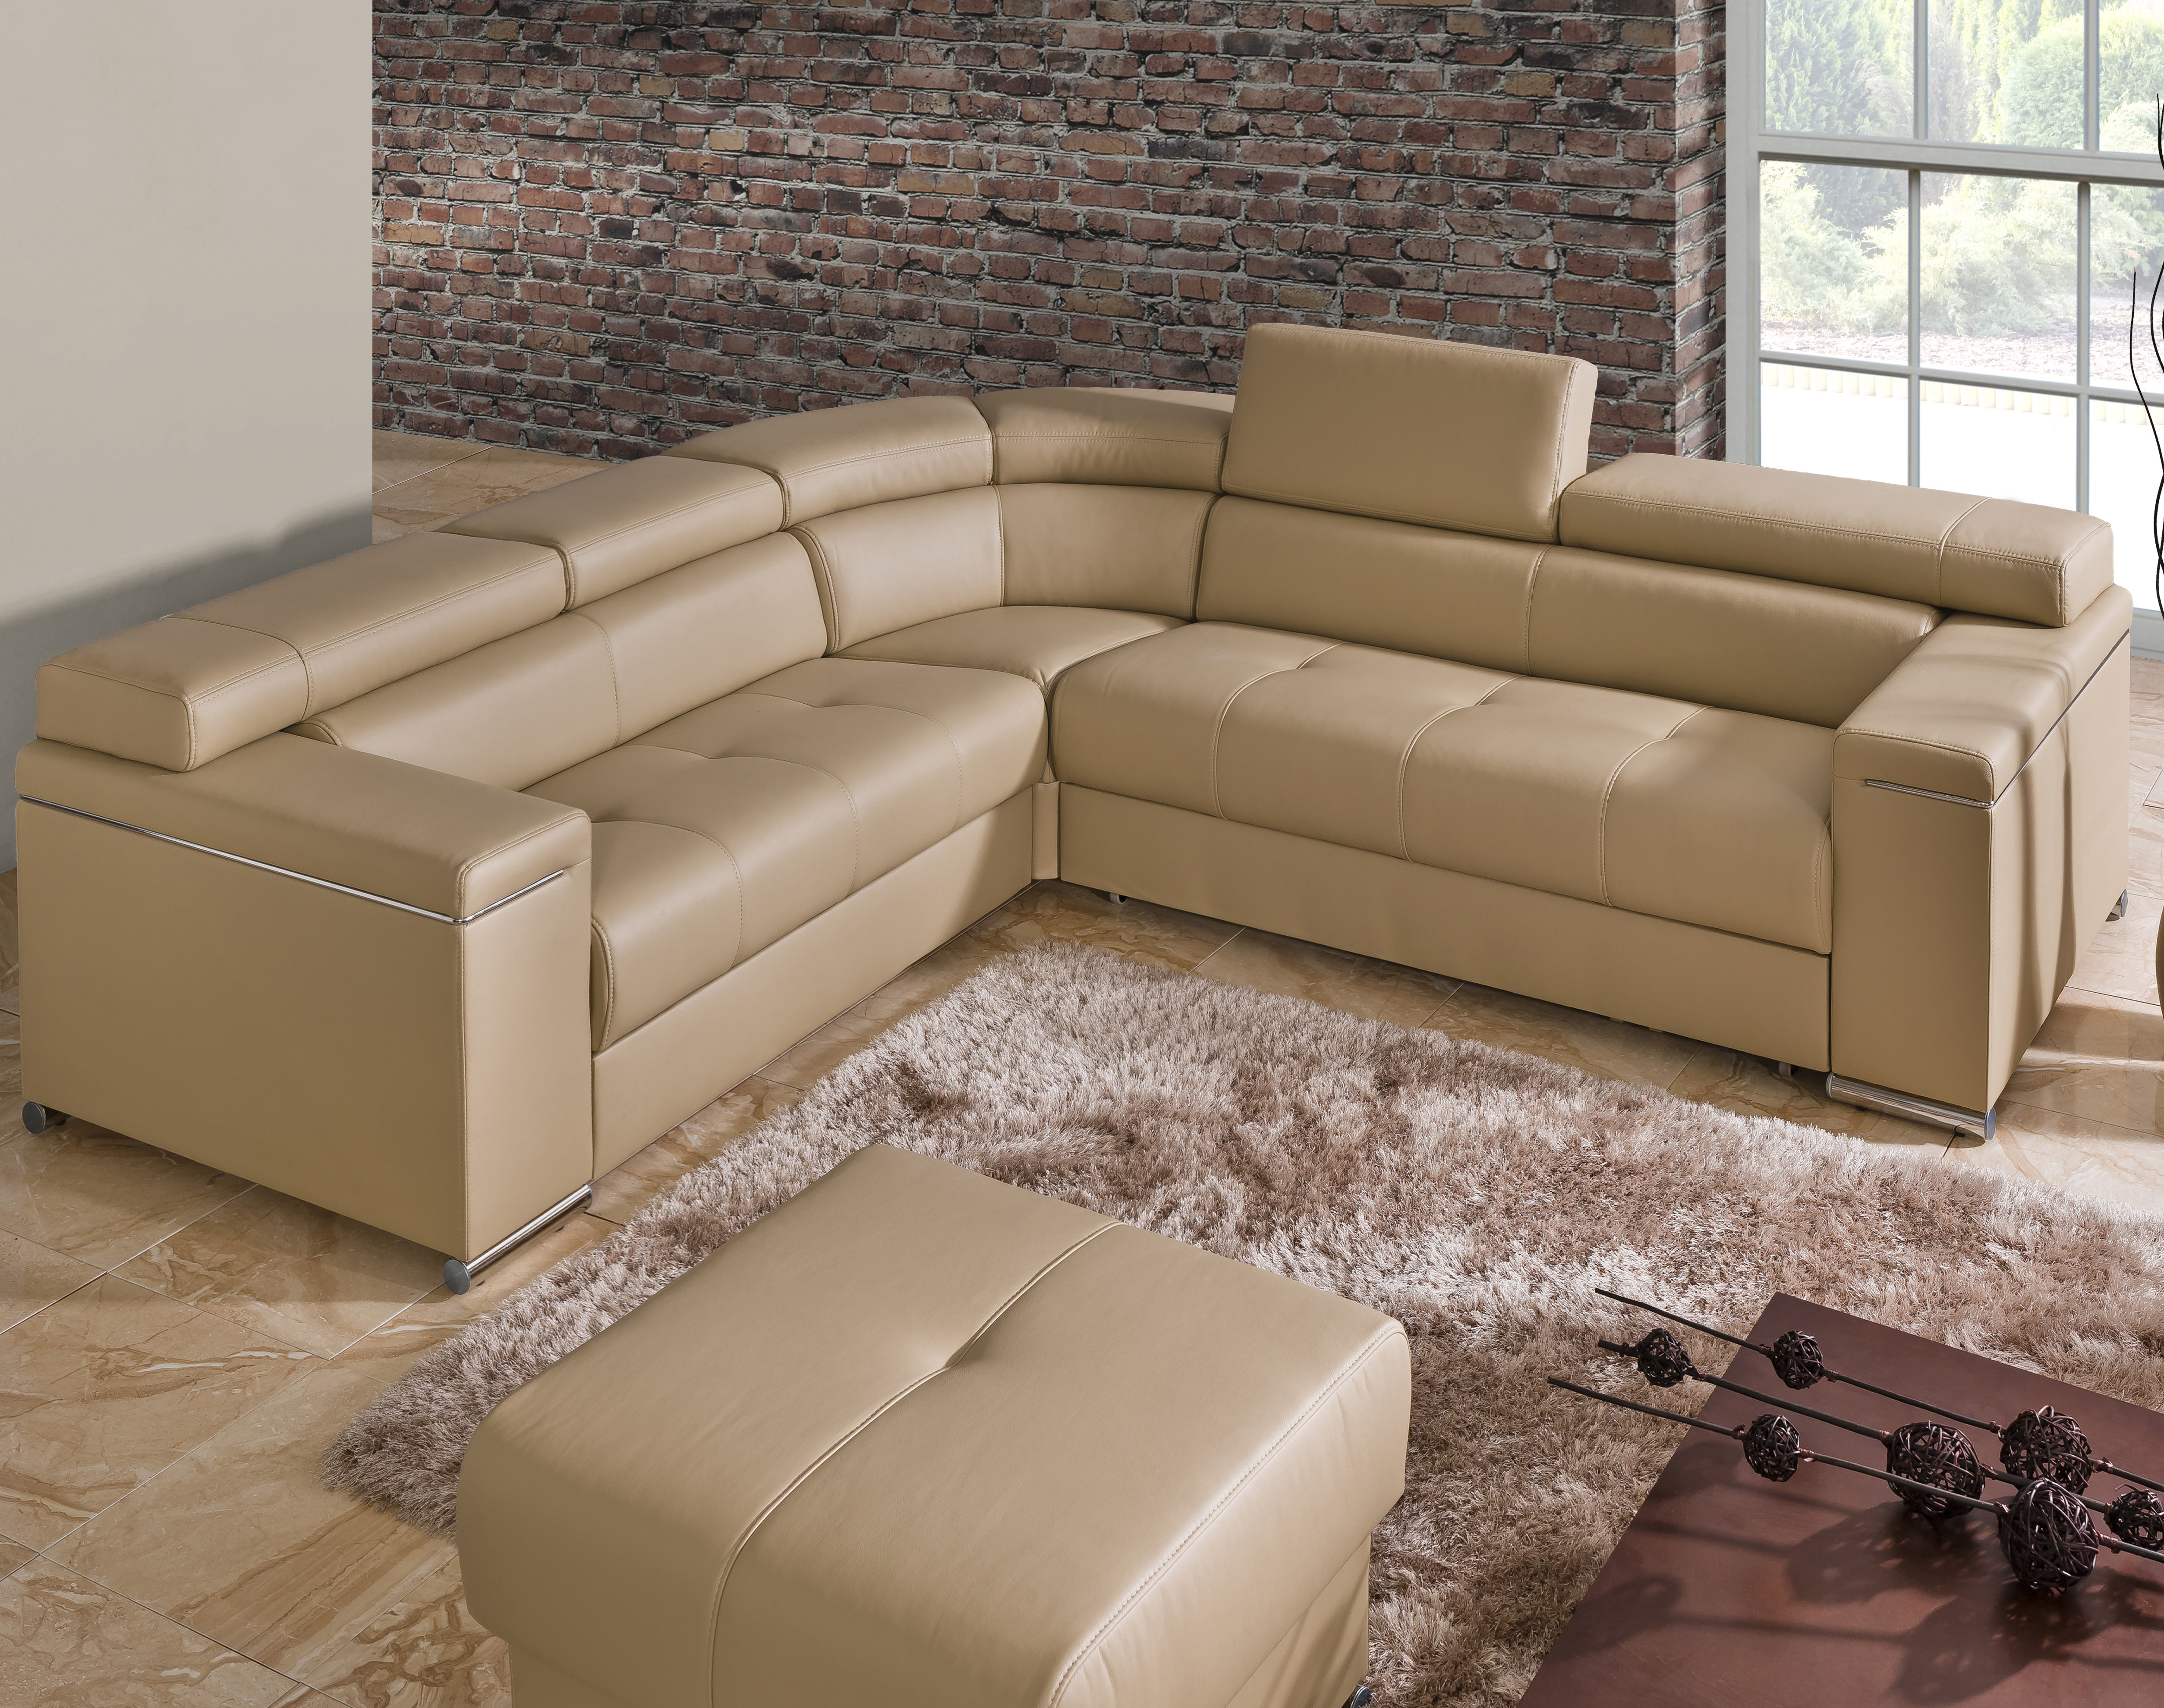 Blaine 4 Piece Sectionals Inside Popular The Collection German Furniture Sleeper Sectional (View 5 of 20)